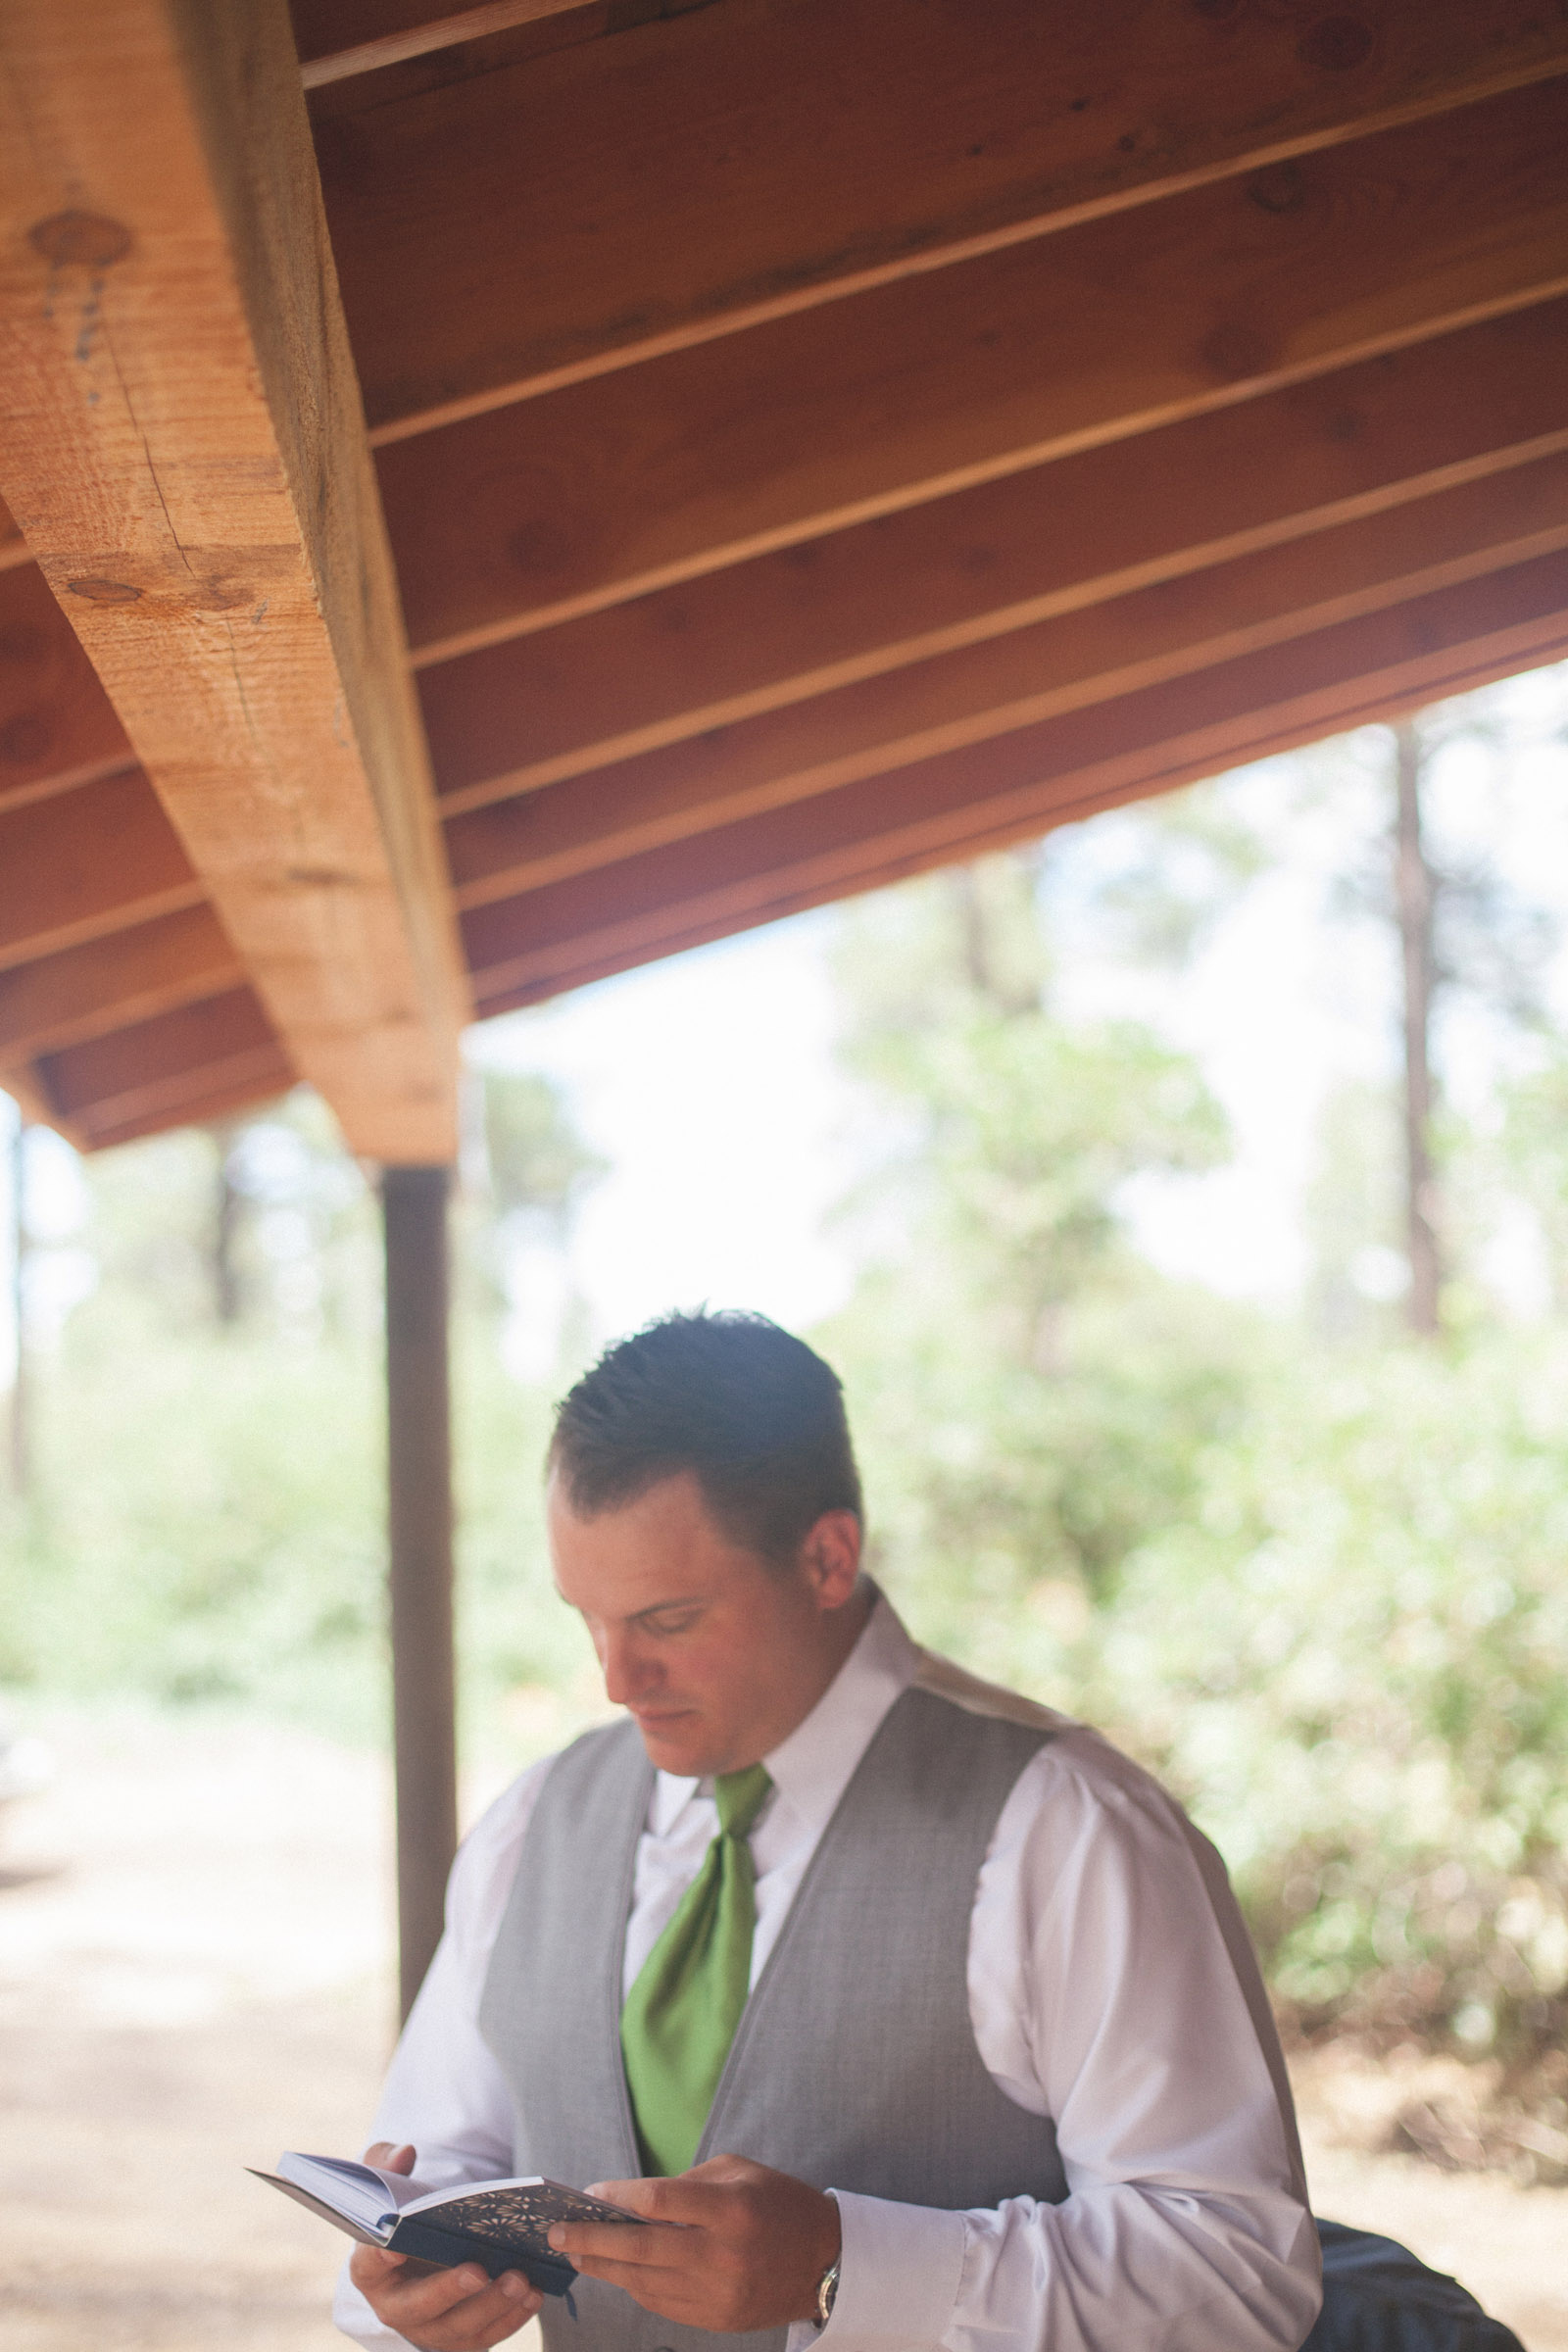 056-groom-wedding-cabin-woods-forest-pictures-photos-dress-photography-portraits